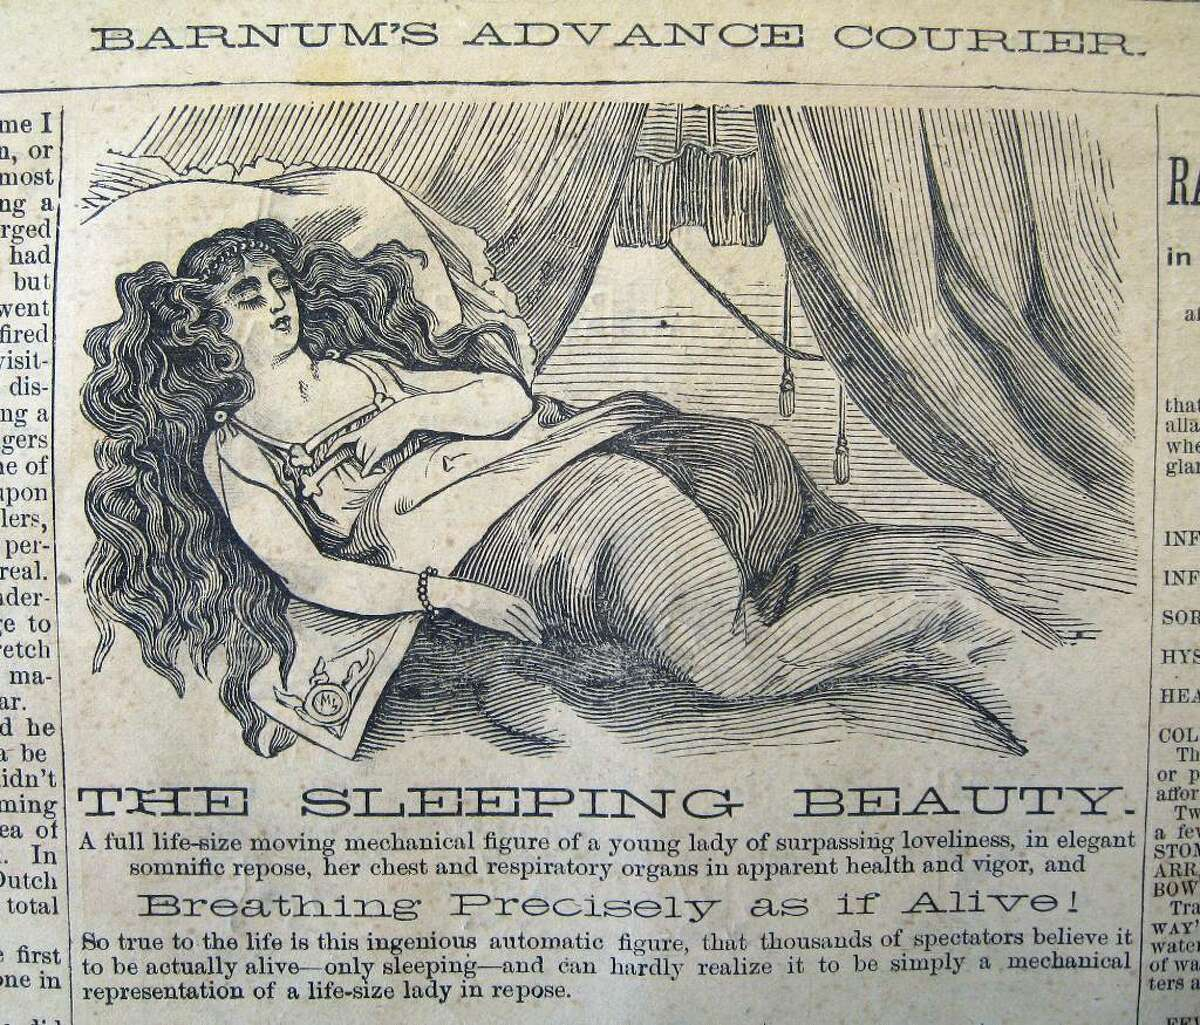 """The mechanical, life-sized Sleeping Beauty was just one of the many hundreds of attractions that the Barnum hawked in his Advance Courier, """"her chest and respiratory organs in apparent health and vigor."""" (Courtesy of the Bridgeport History Center at the Bridgeport Public Library)"""